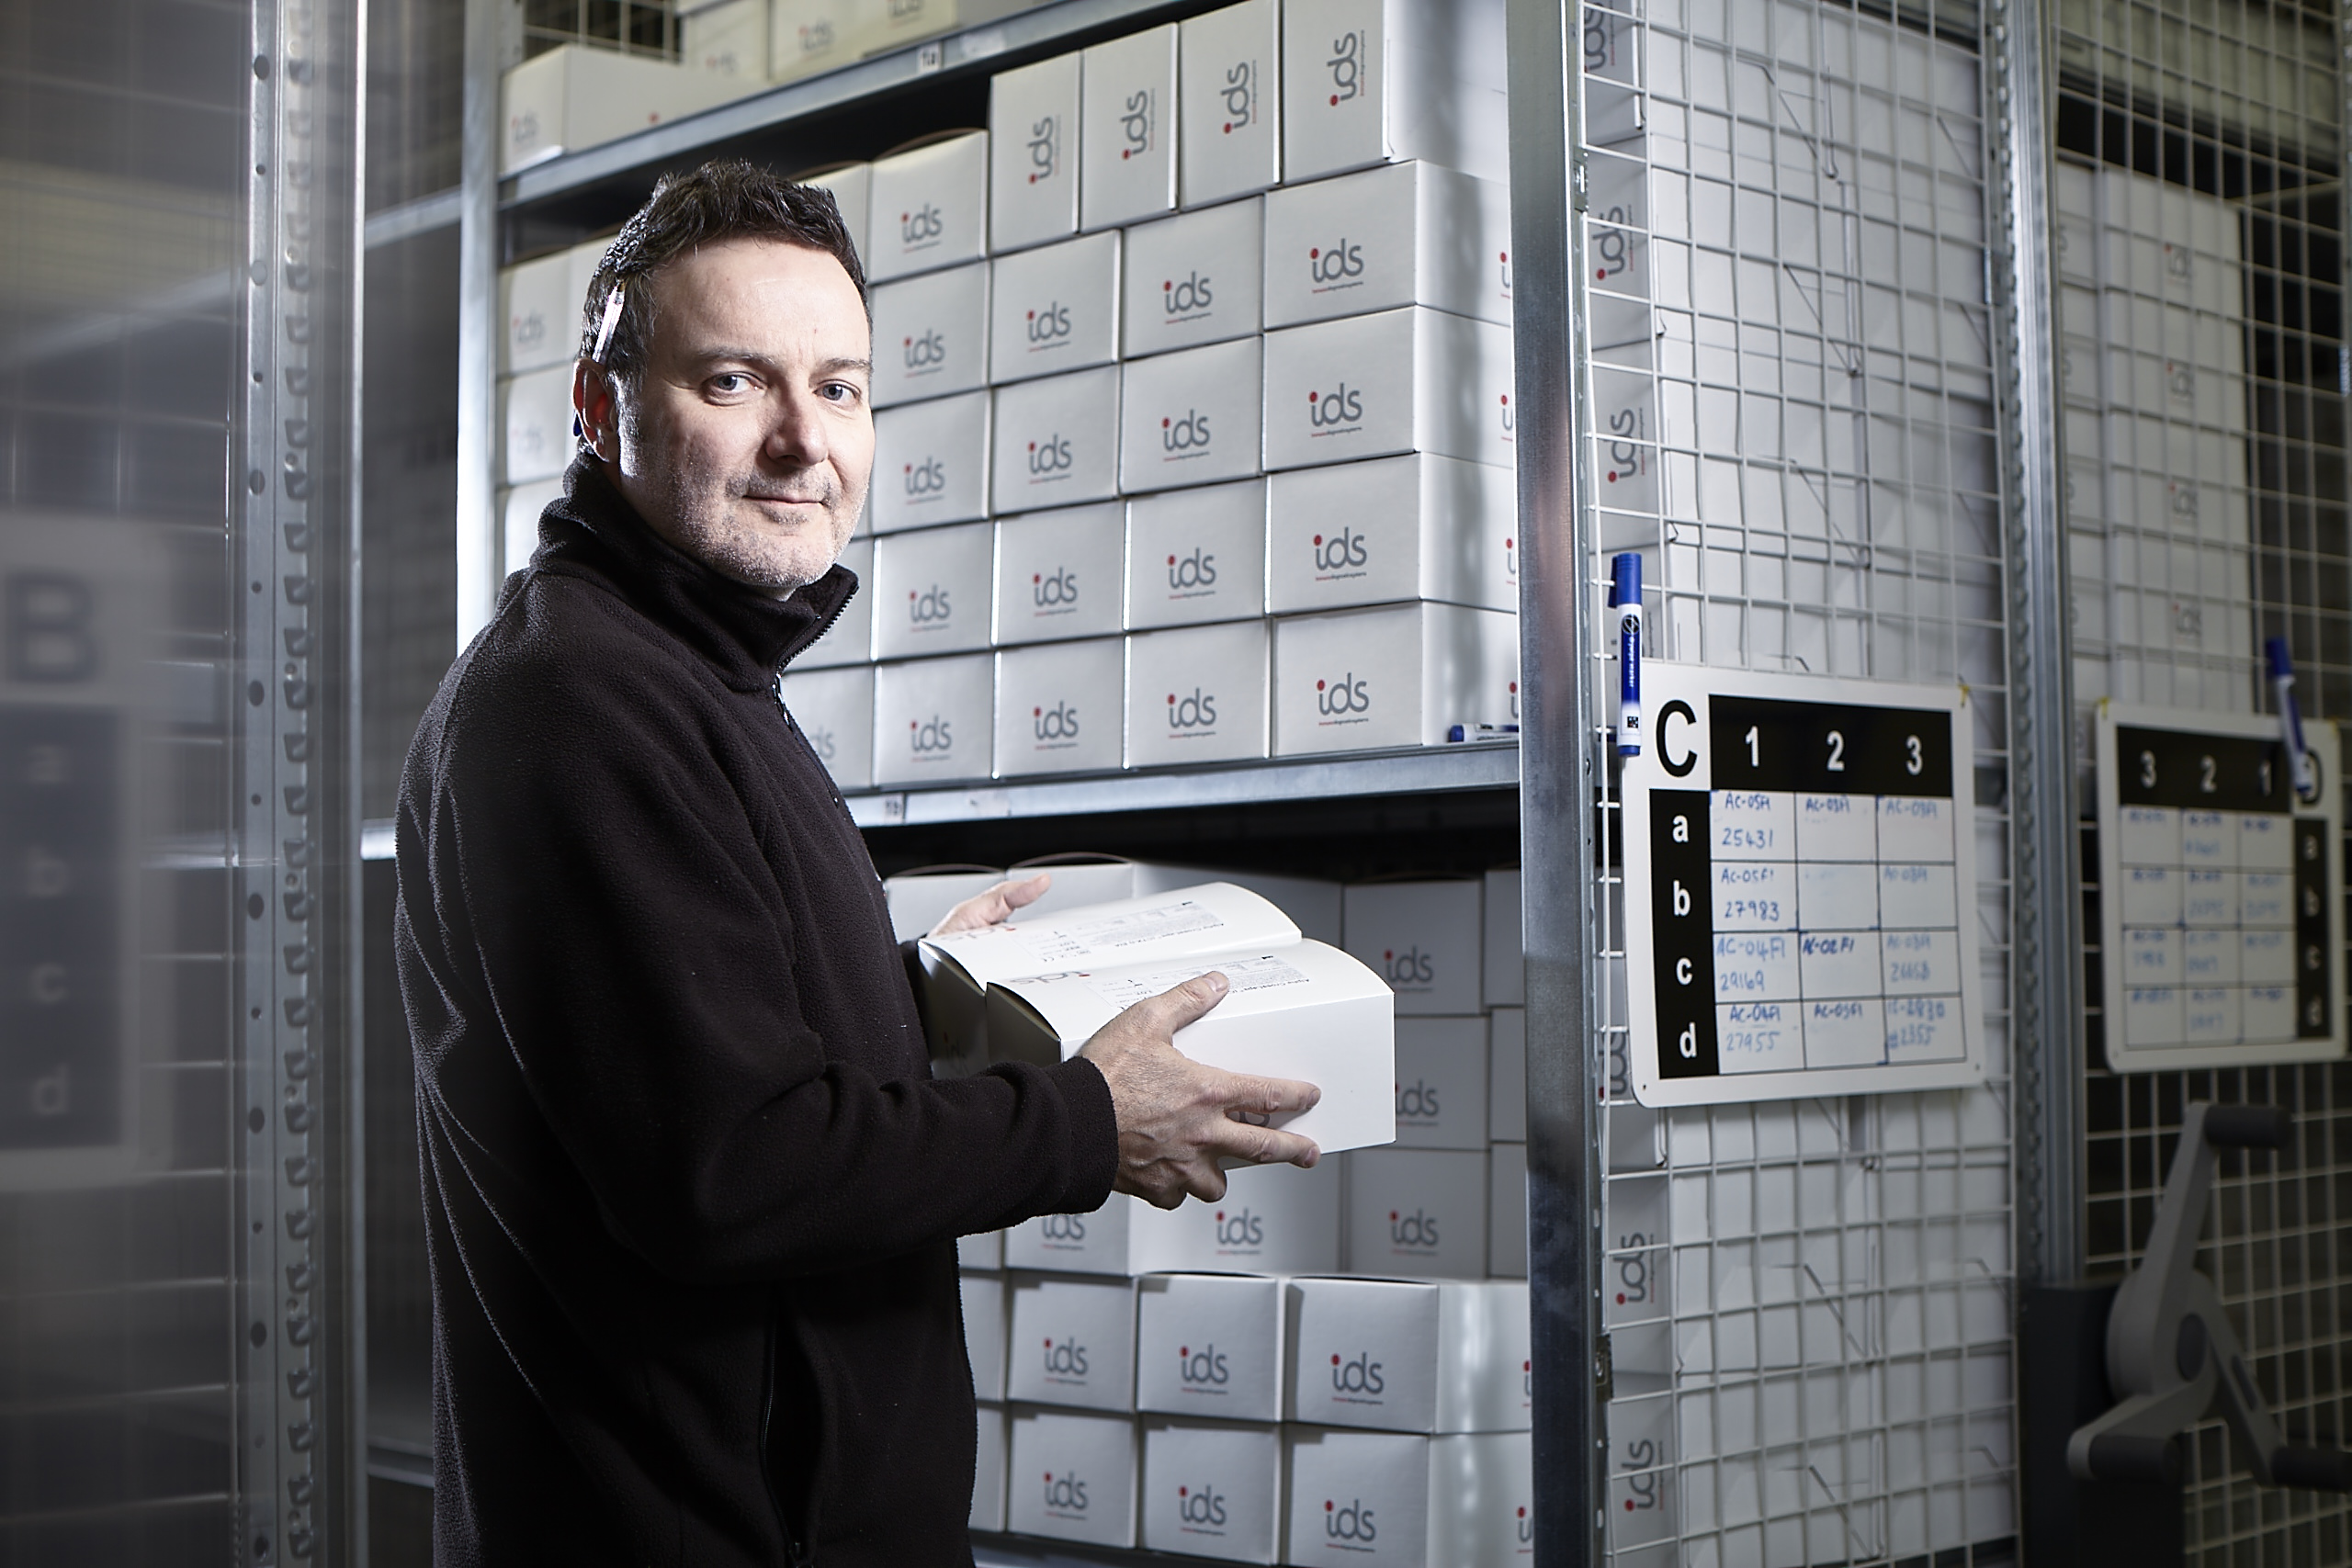 A man loads IDS-branded boxes onto metal shelving